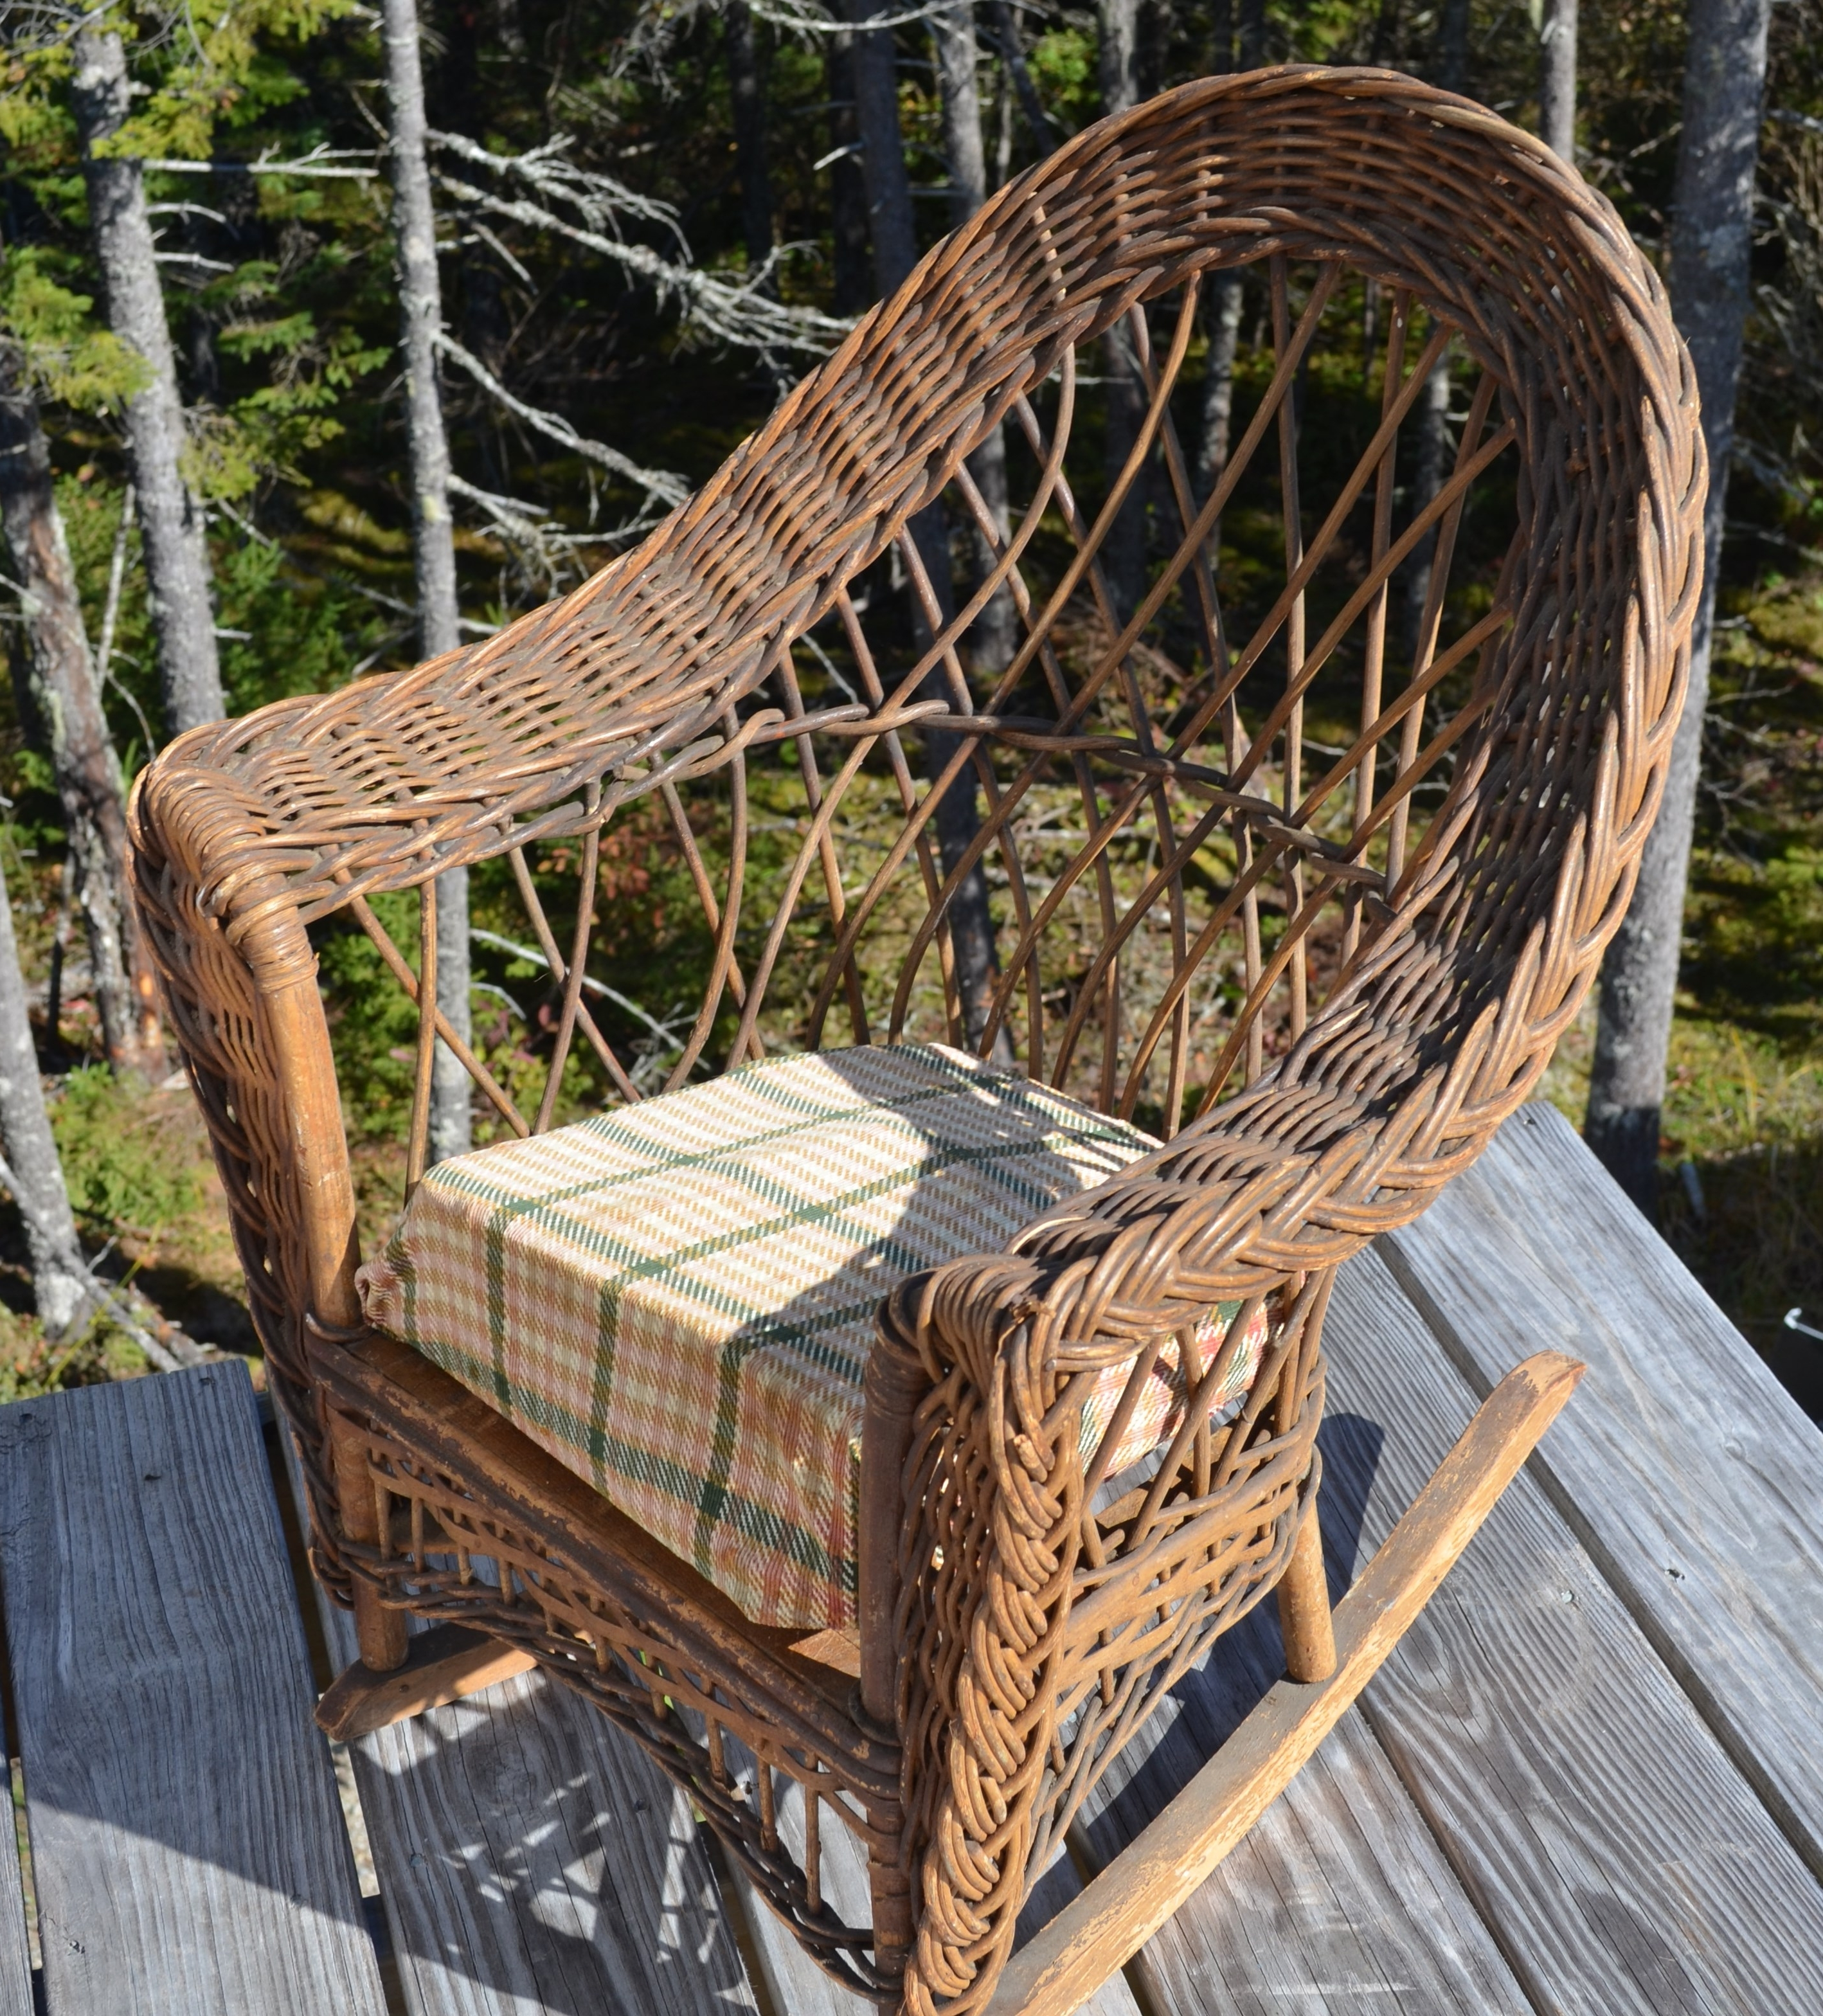 Antique Wicker – Online Catalog Regarding Current Antique Wicker Rocking Chairs With Springs (View 2 of 15)